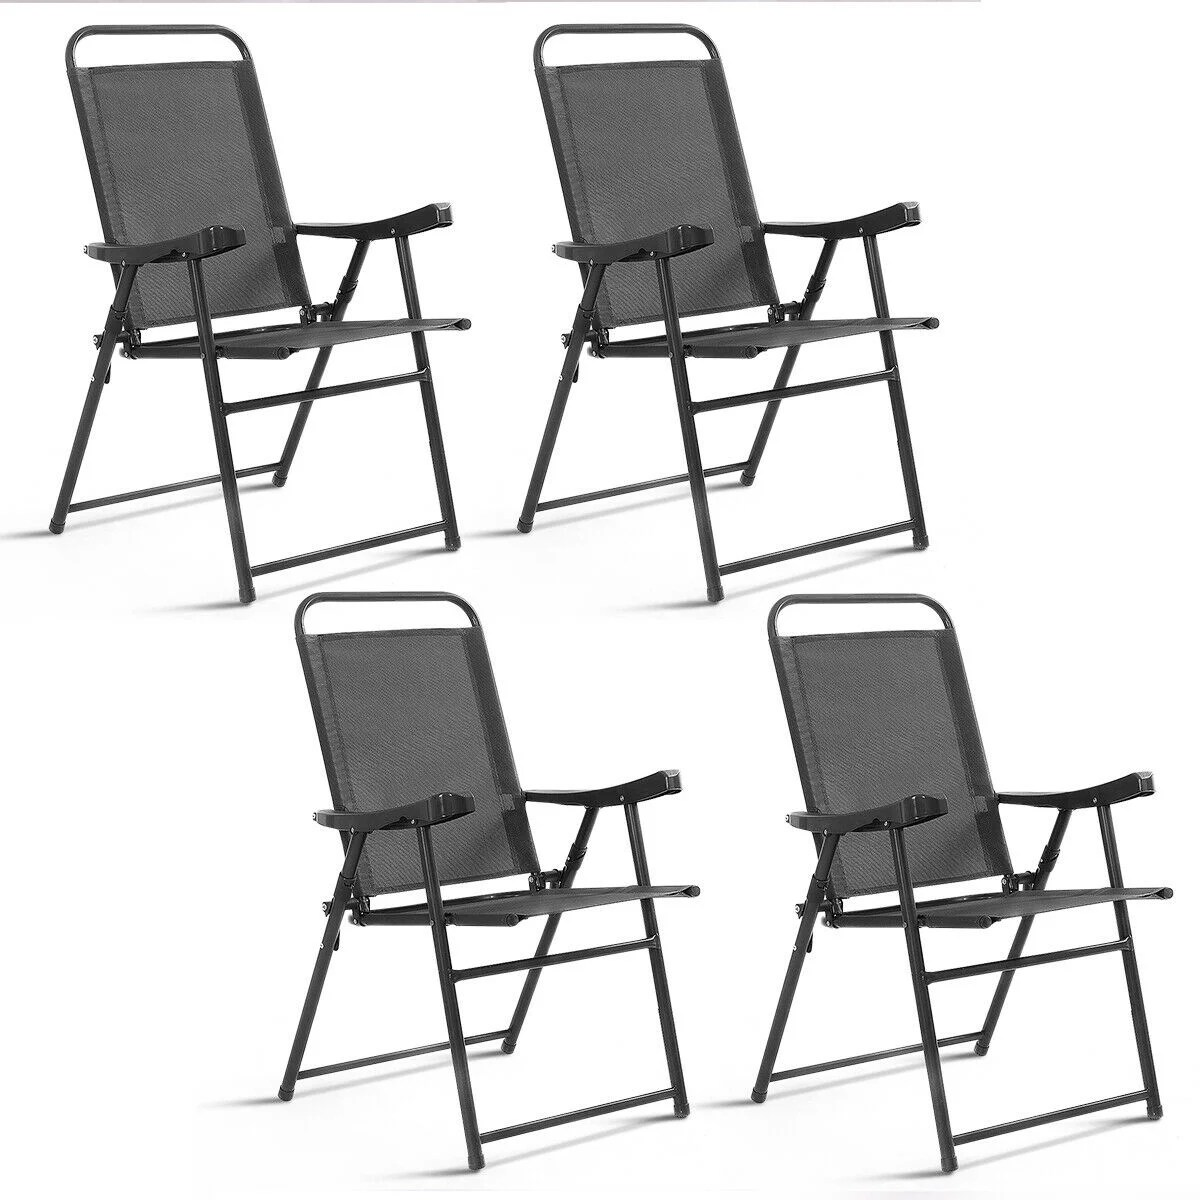 Beach Folding Chairs Costway Set Of 4 Folding Sling Chairs Patio Furniture Camping Pool Beach With Armrest